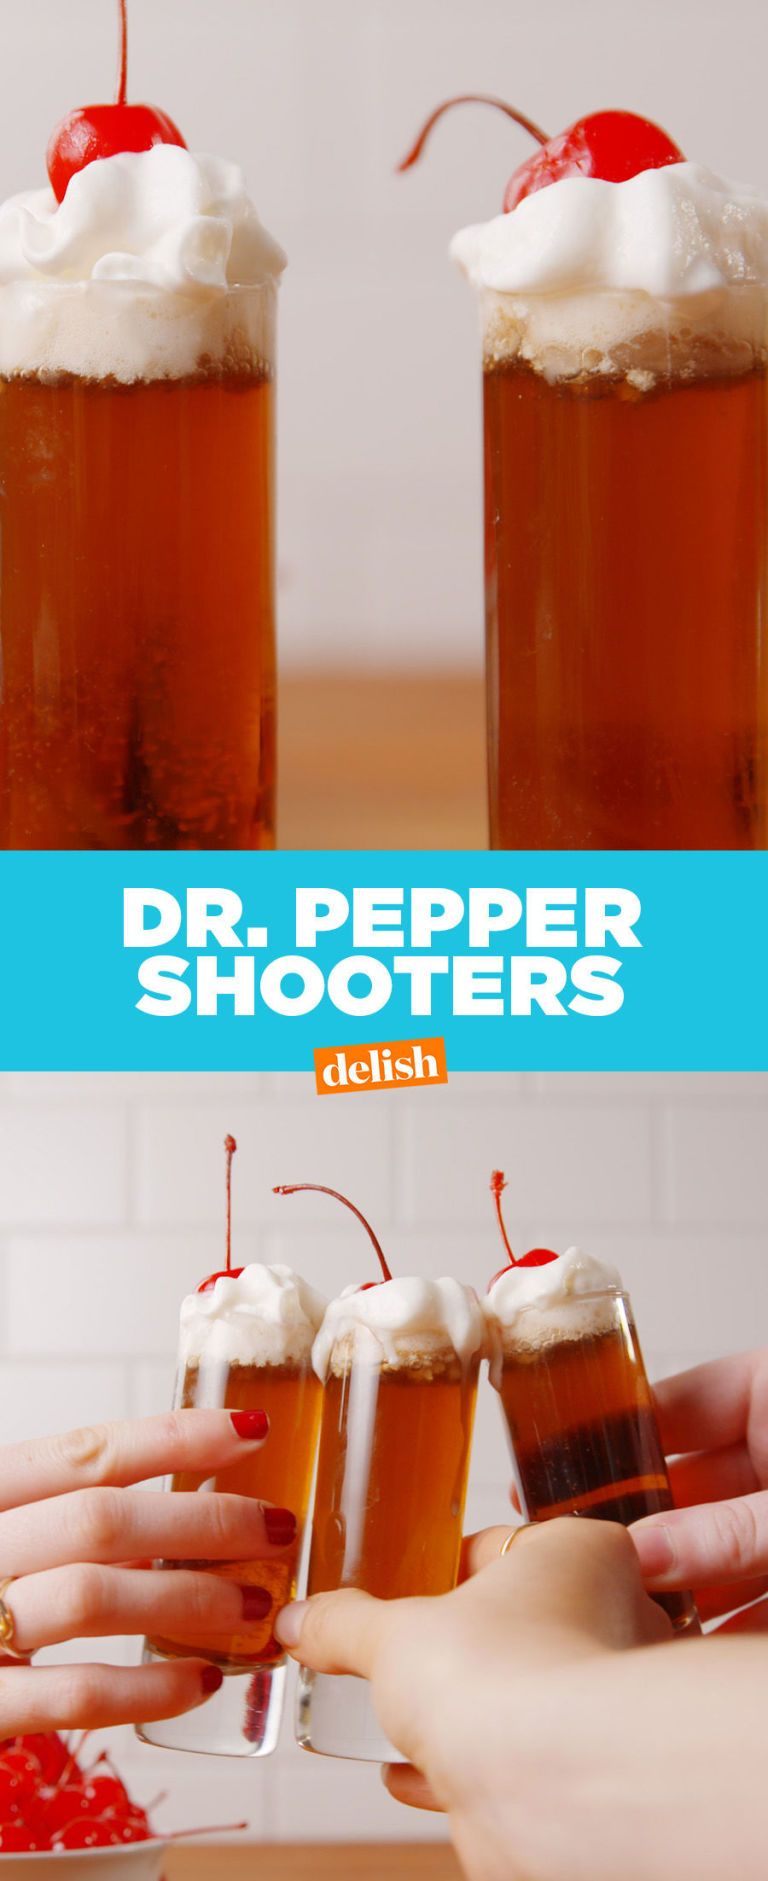 Dr Pepper Shooters Recipe Stuffed Peppers Shooter Recipes